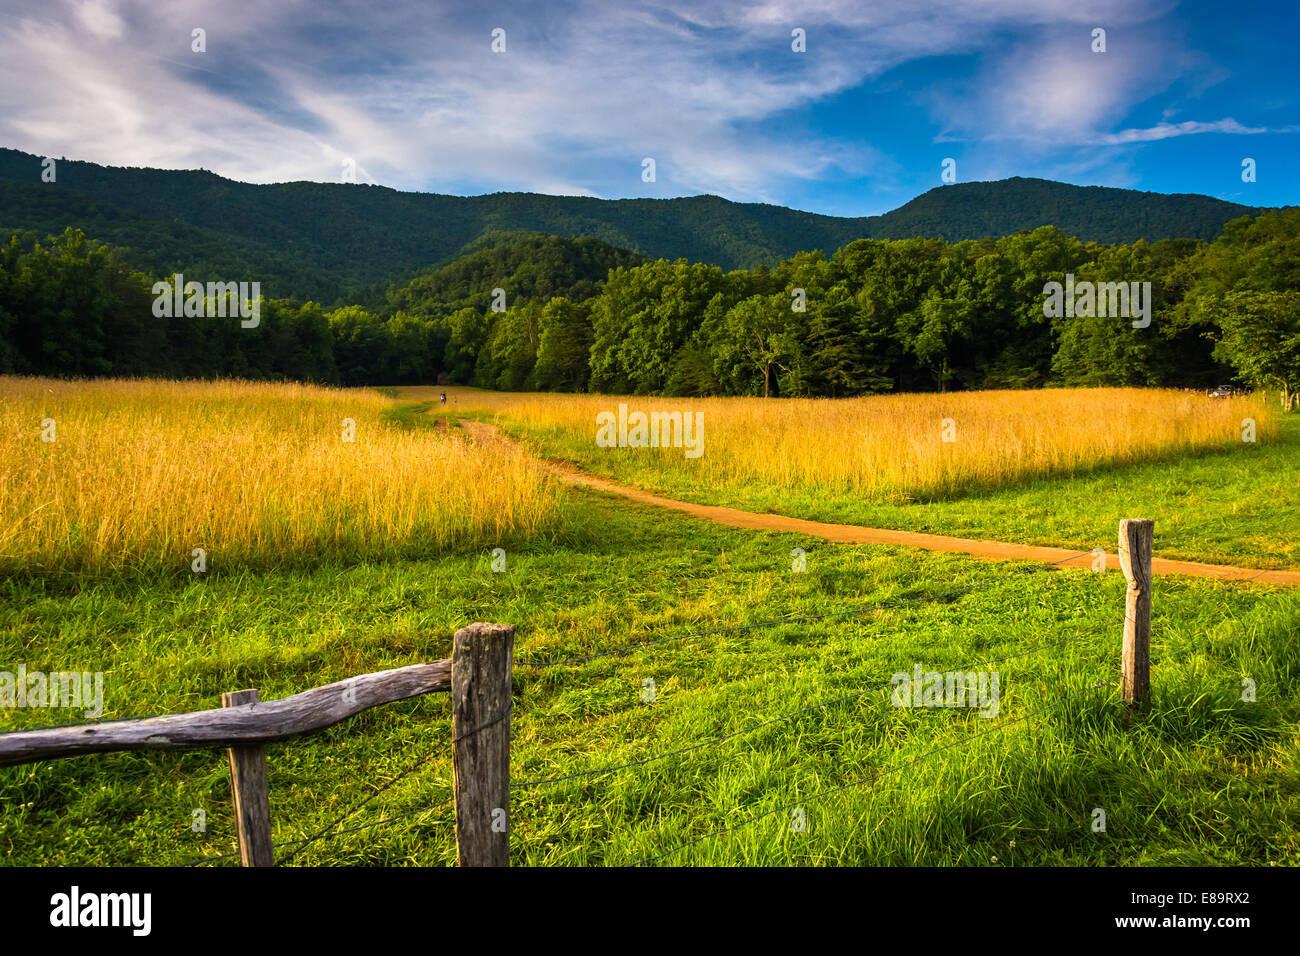 Fence and field at  Cade's Cove, Great Smoky Mountains National Park, Tennessee. - Stock Image